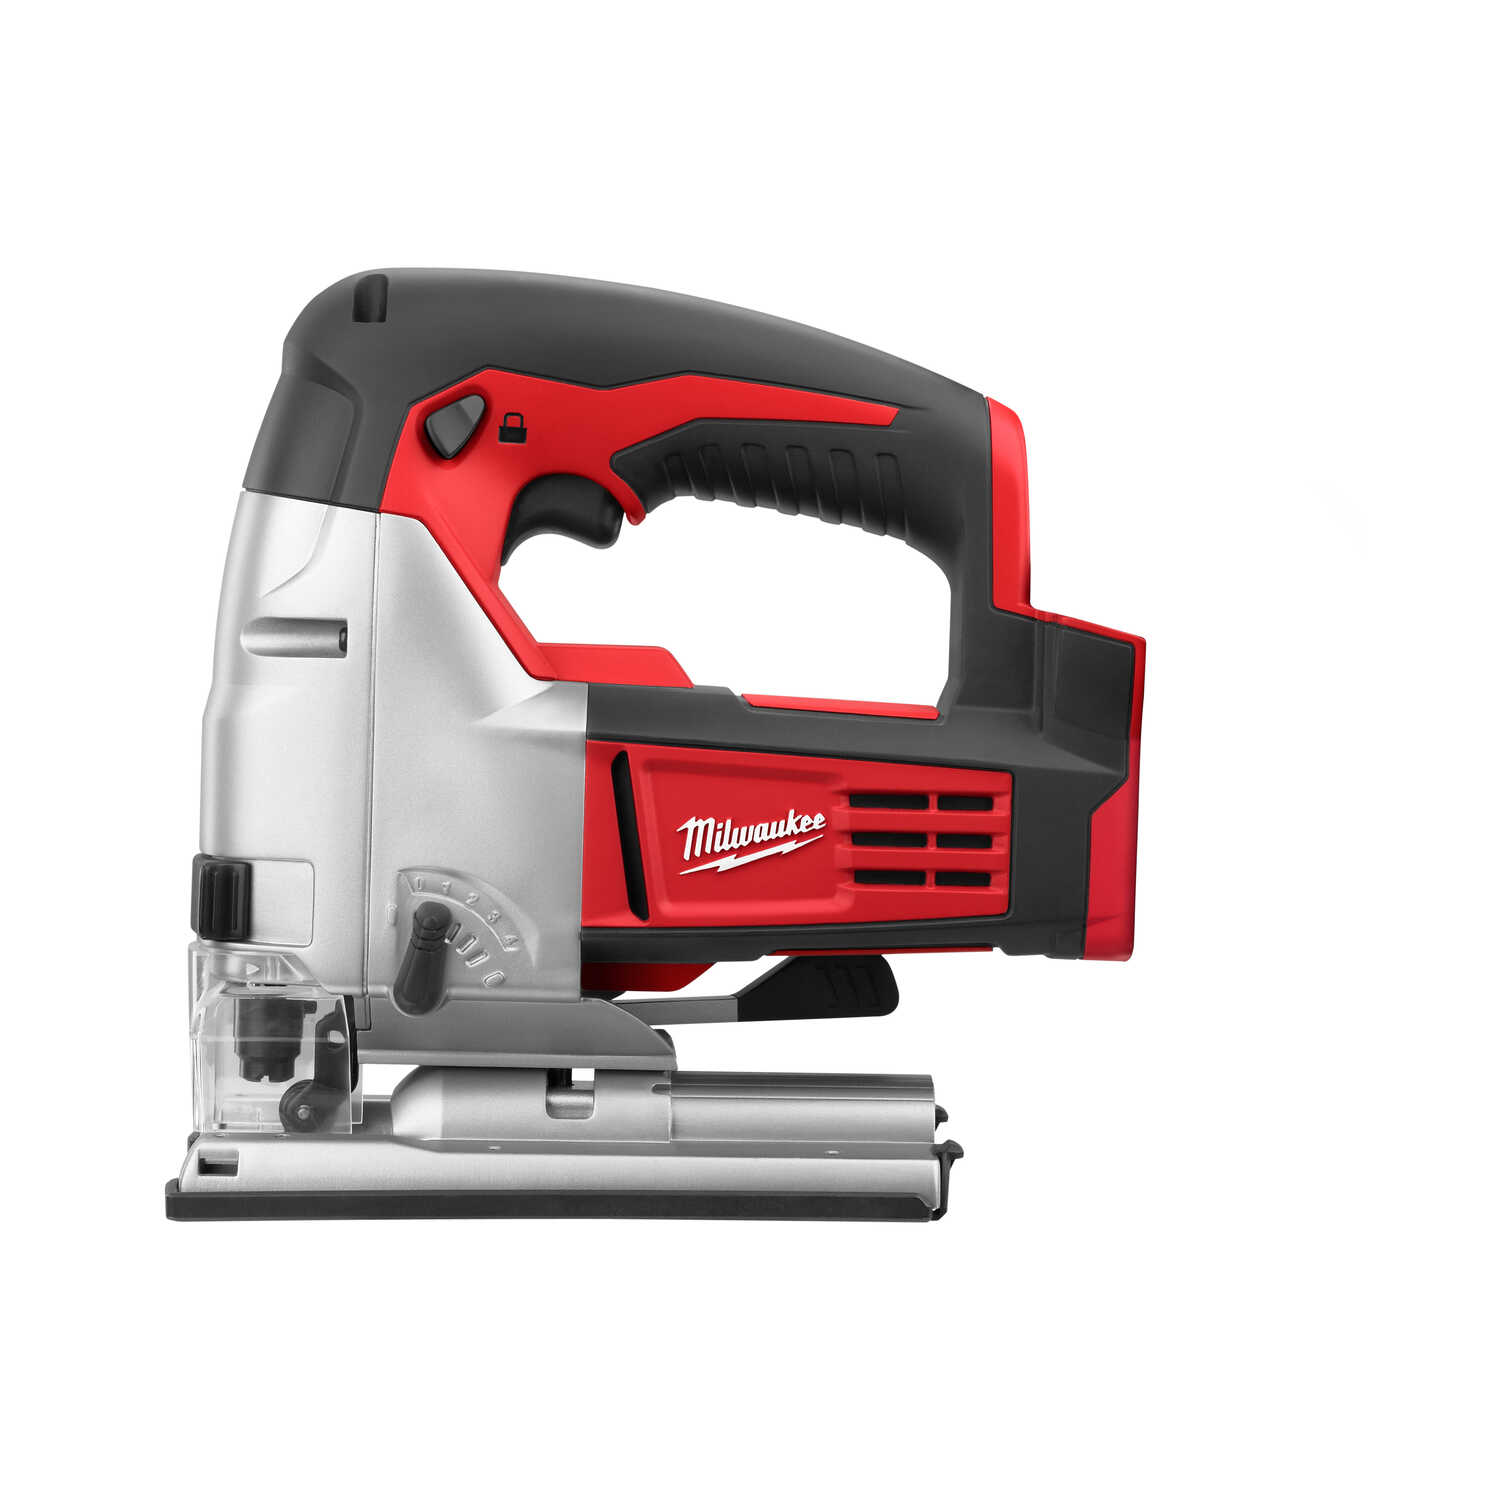 Milwaukee  M18  1 in. Cordless  Keyless D-Handle  Jig Saw  2700 spm 18 volt